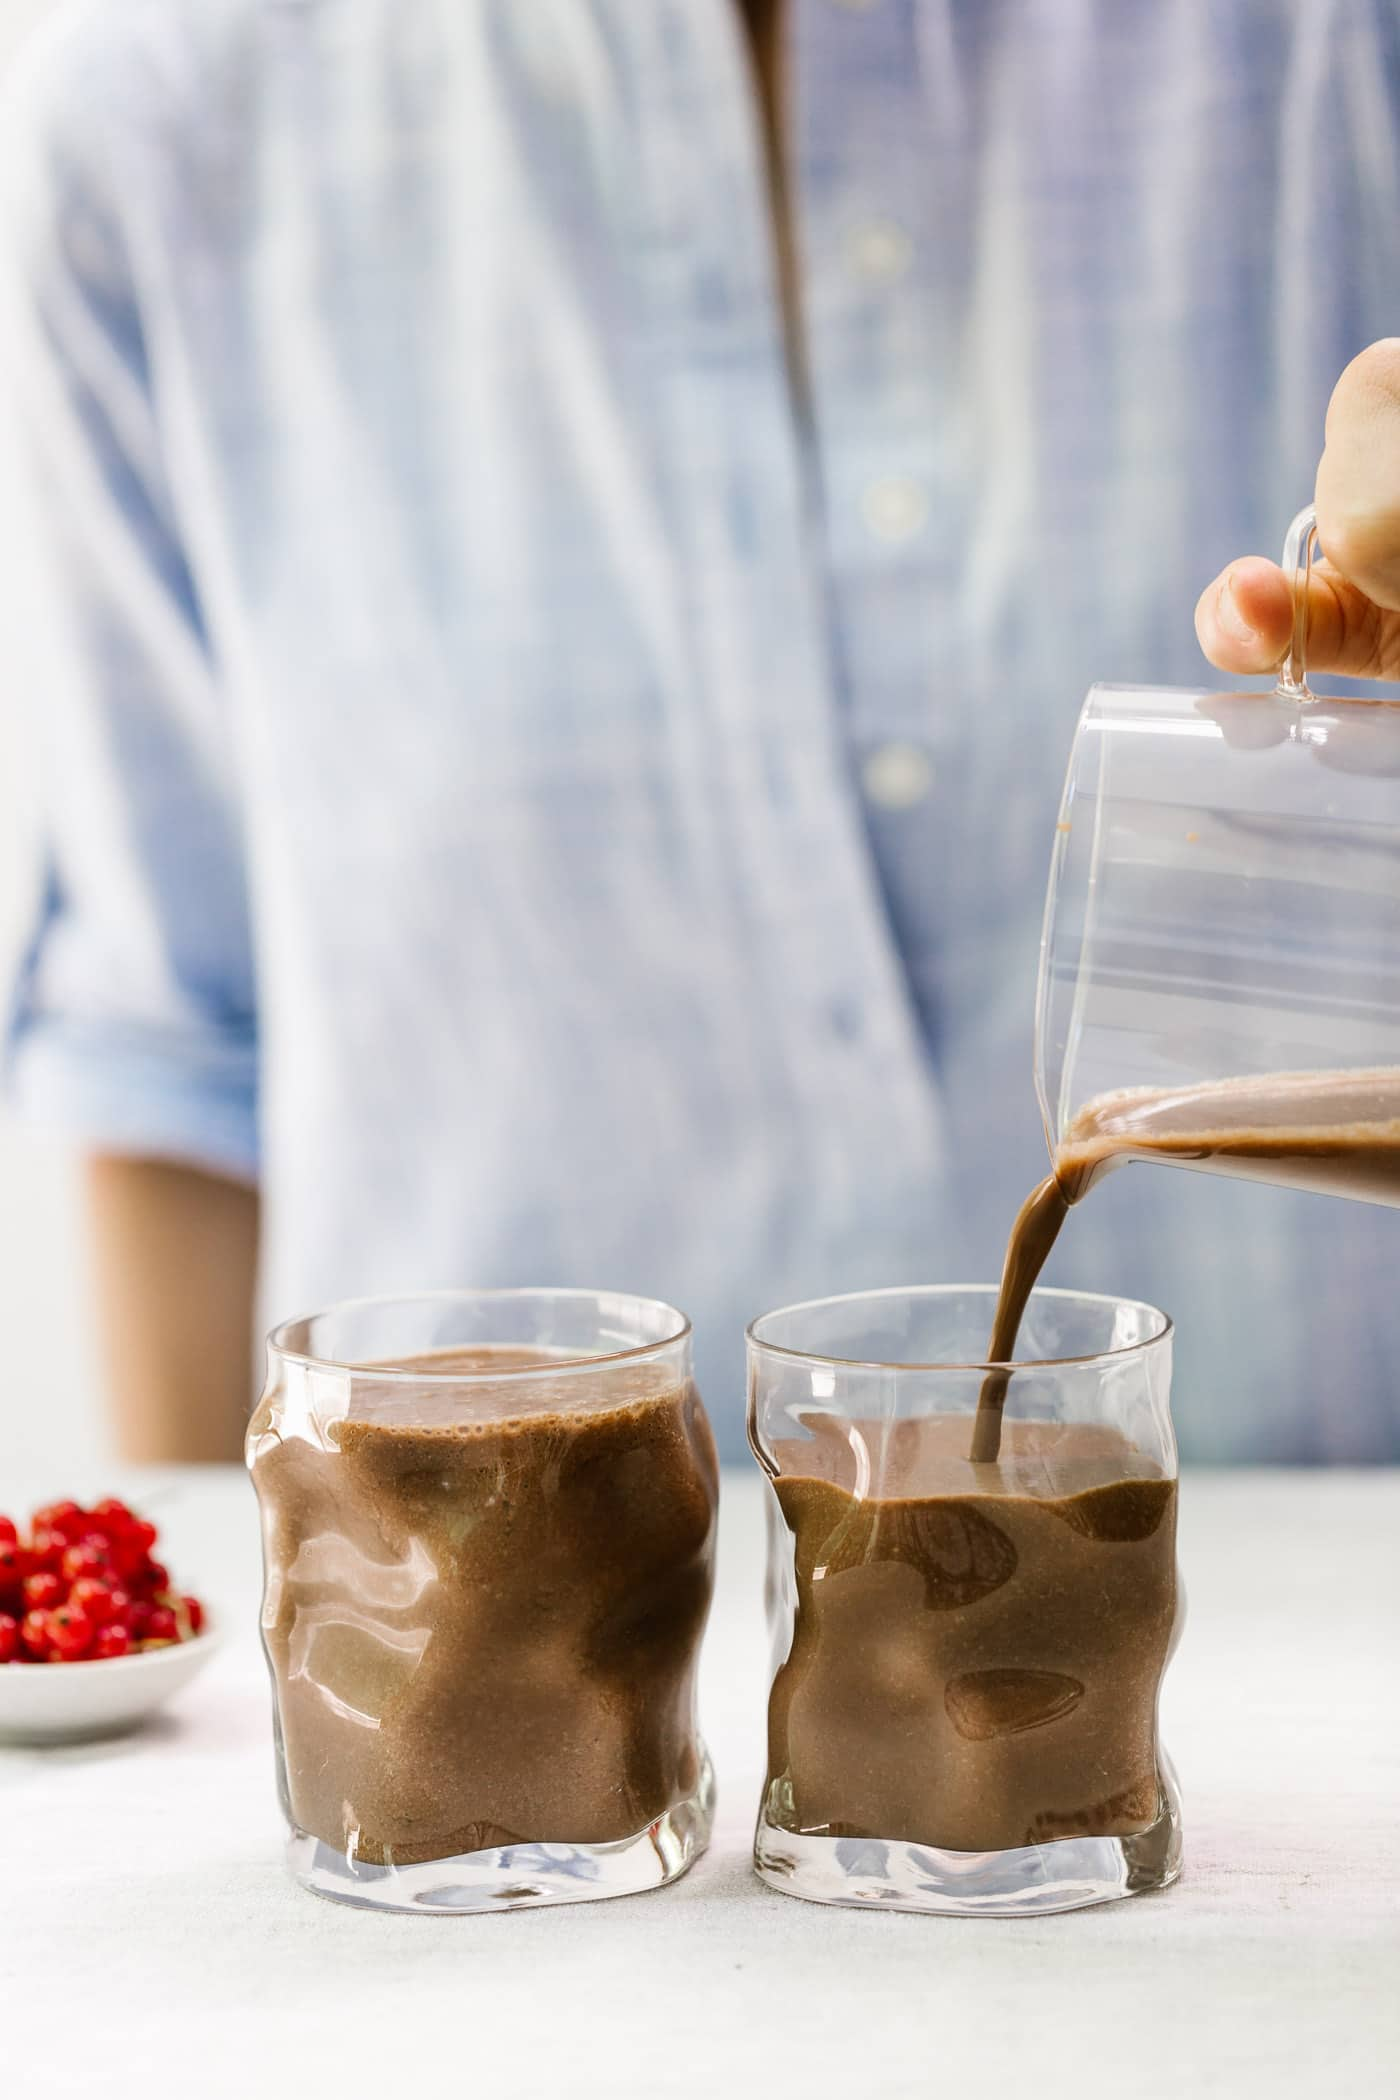 Foolproof Living's Best Chocolate Recipes For The Holiday Season: A woman is photographed from the front view as she pours Nutella Lover's Healthy Chocolate Smoothie